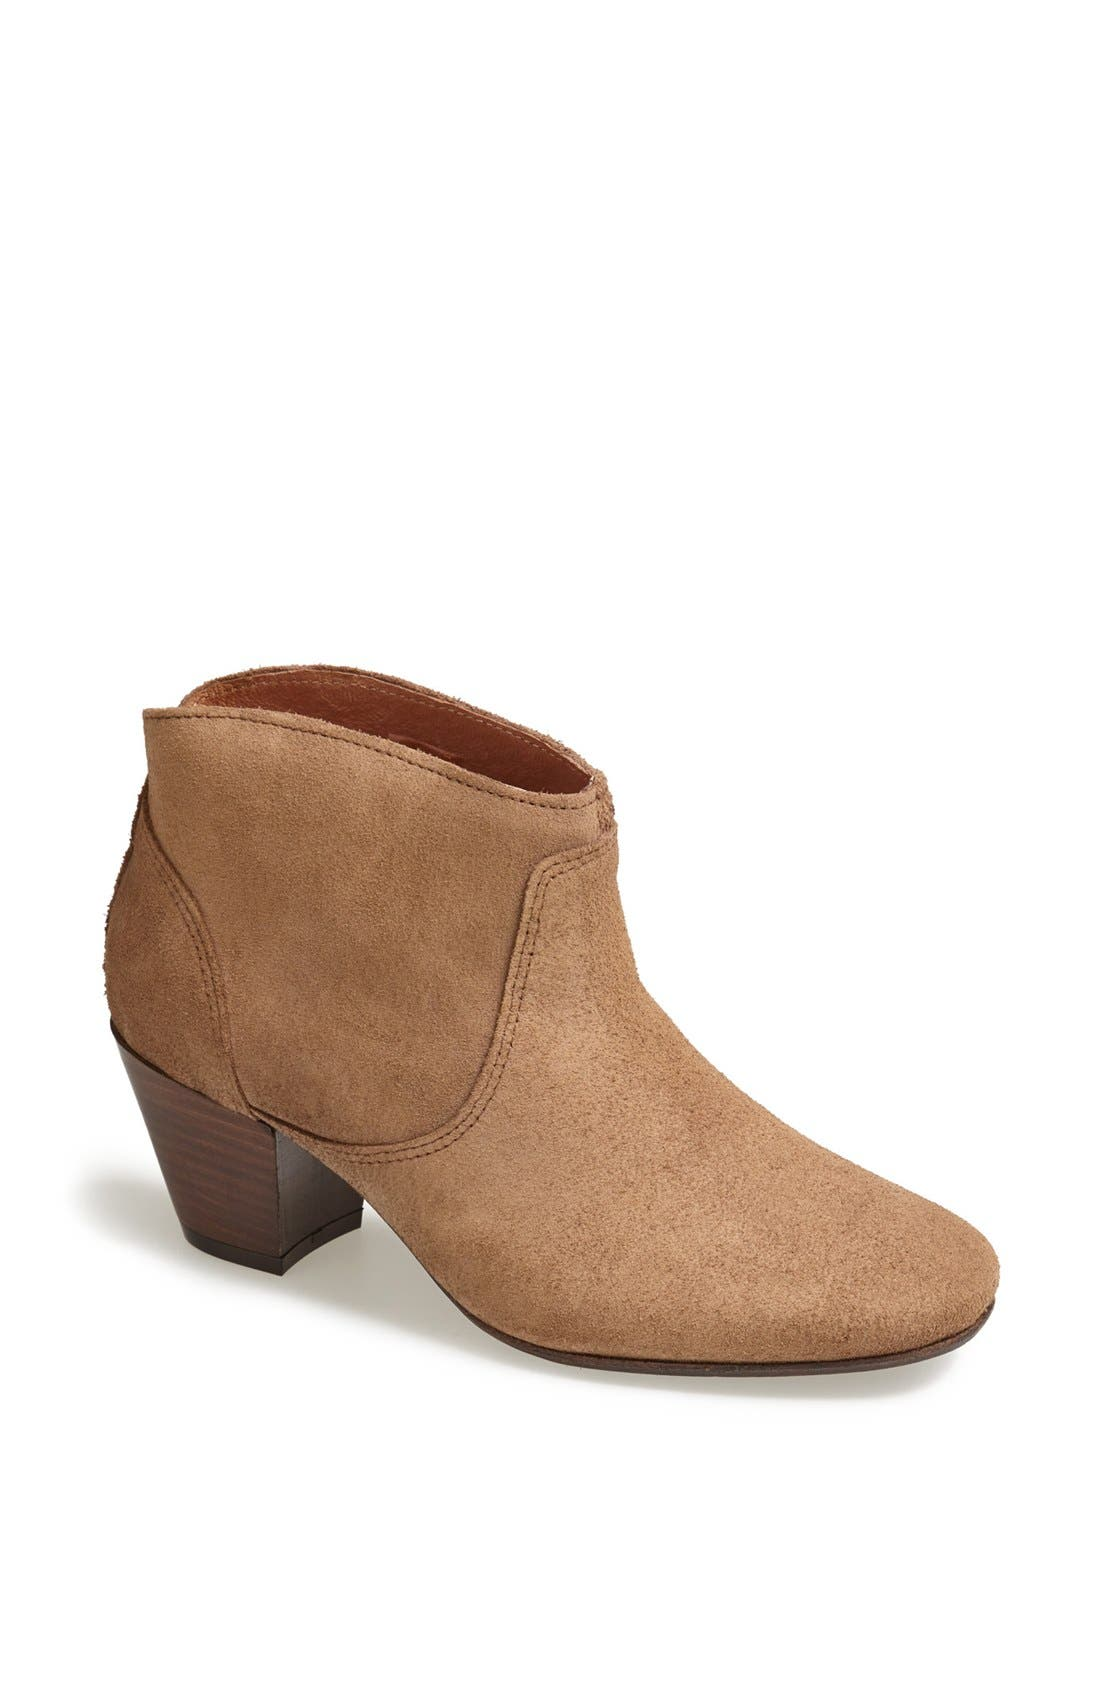 Main Image - H by Hudson 'Mirar' Suede Bootie